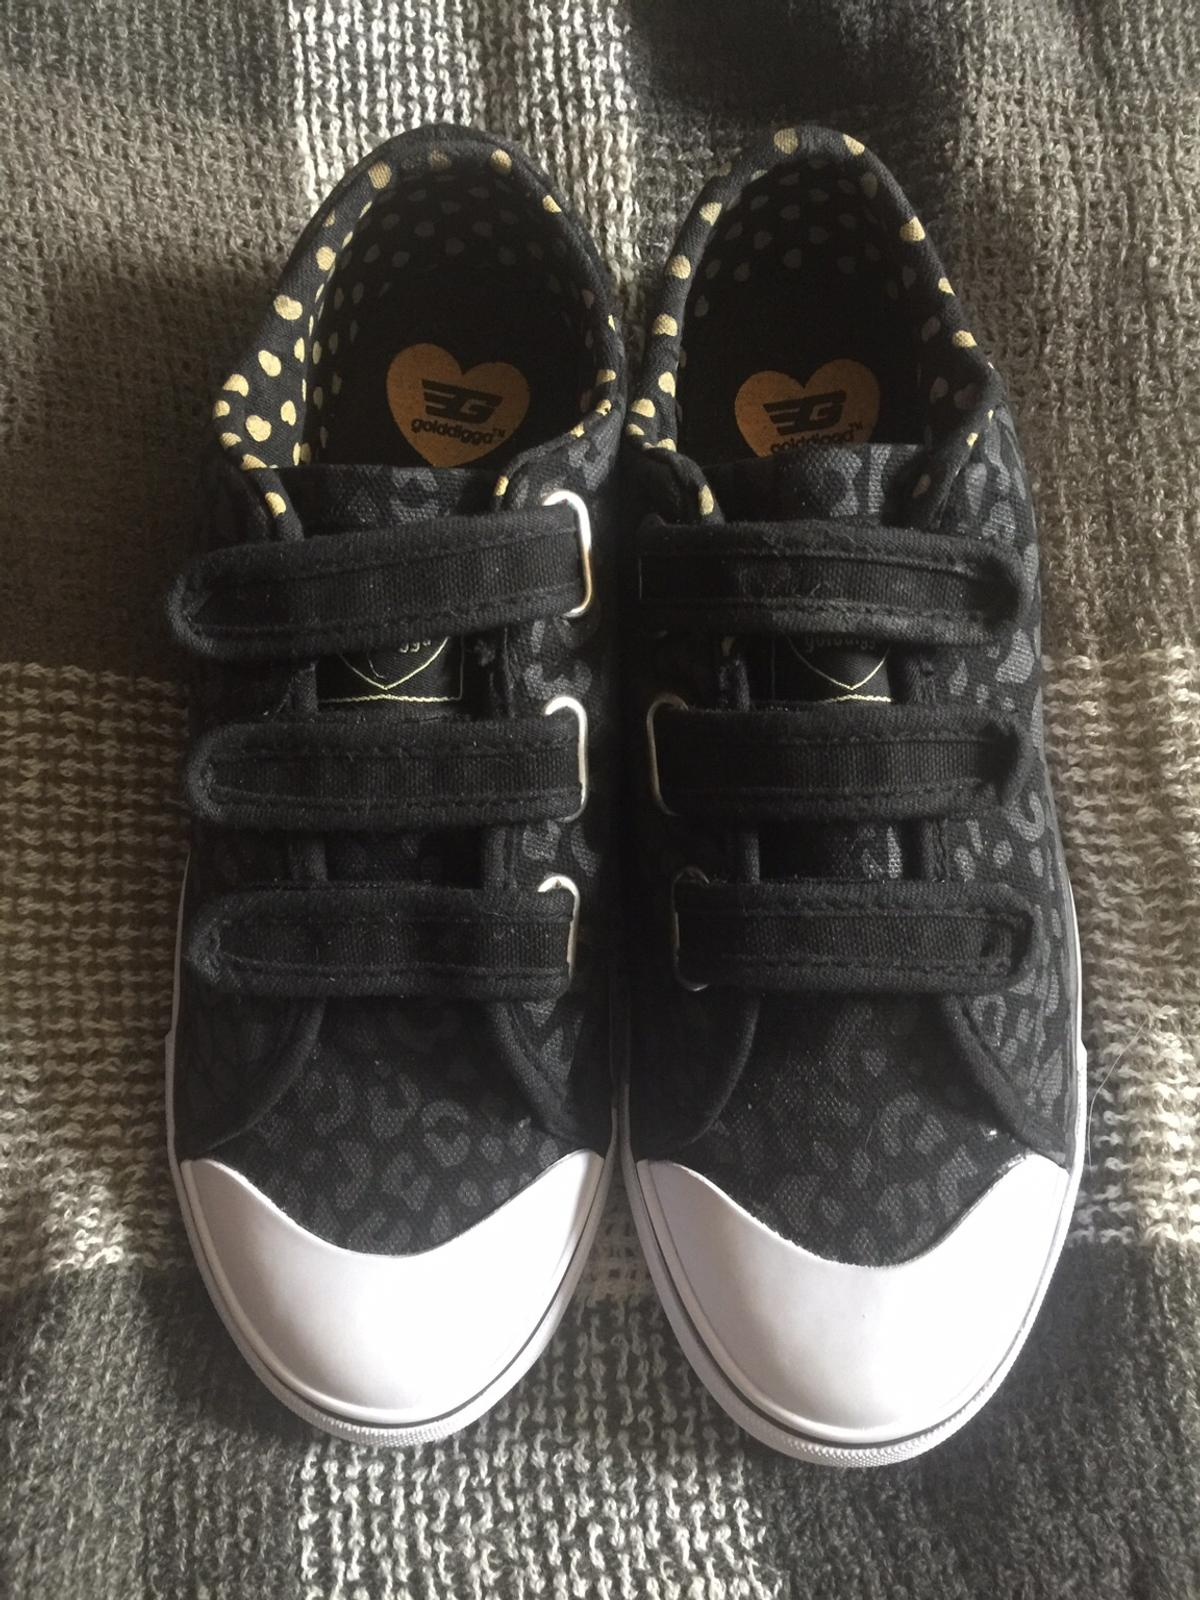 Adidas Ladies Trainers Size Uk 6 Size 39 For Sale in Swords